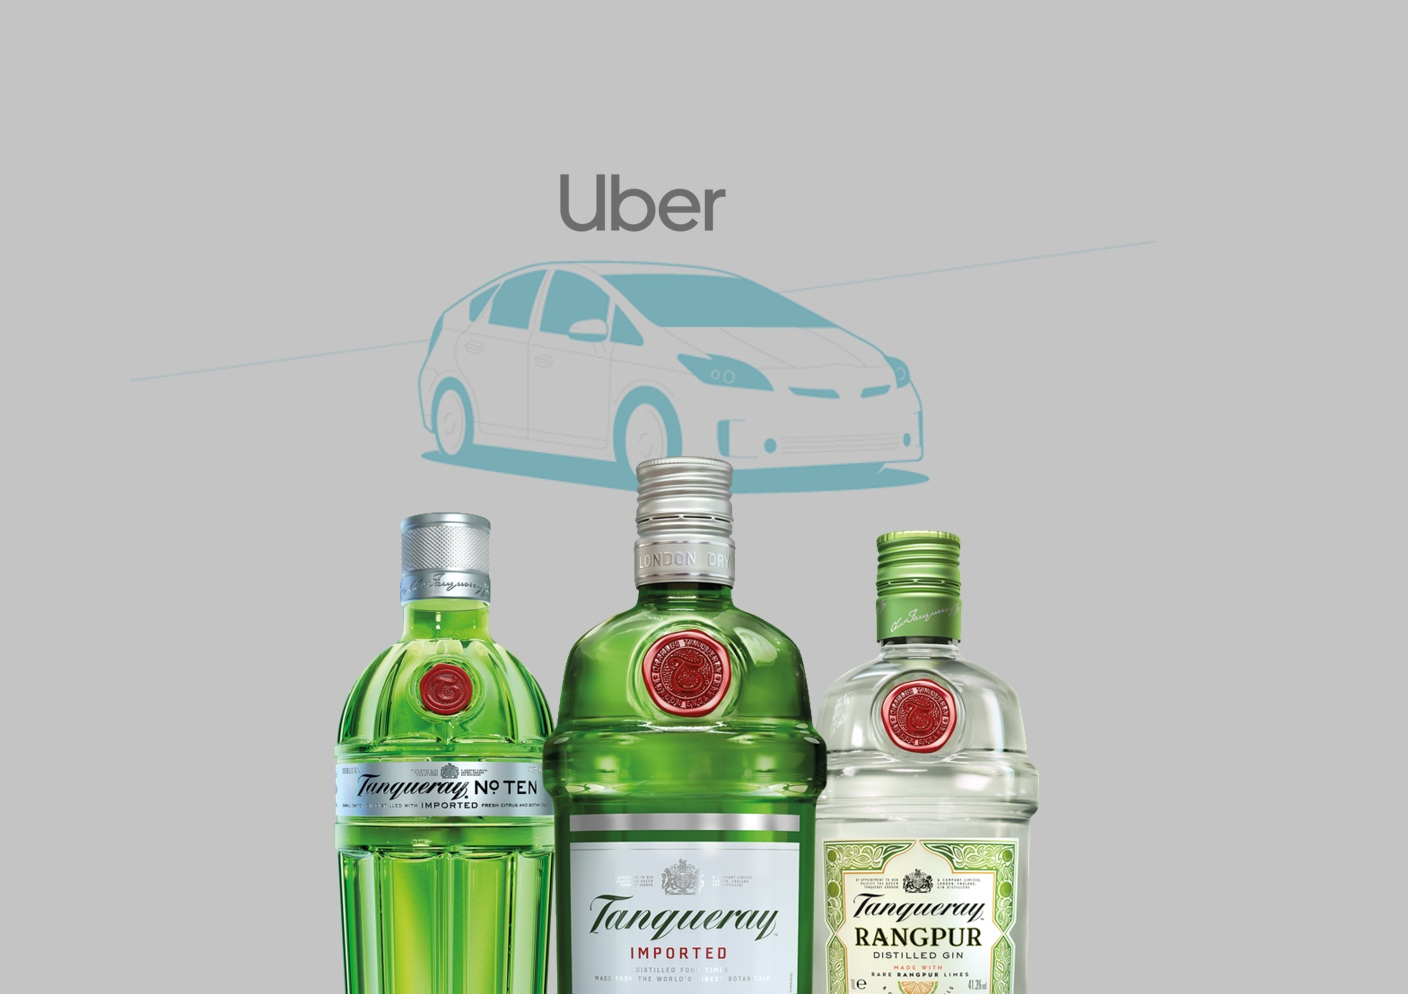 """Get Home Safe - Ketel One and Tanqueray want to do their part to make sure you get home safe. Please use code """"eitf769"""" for a $5 Uber Credit home today."""